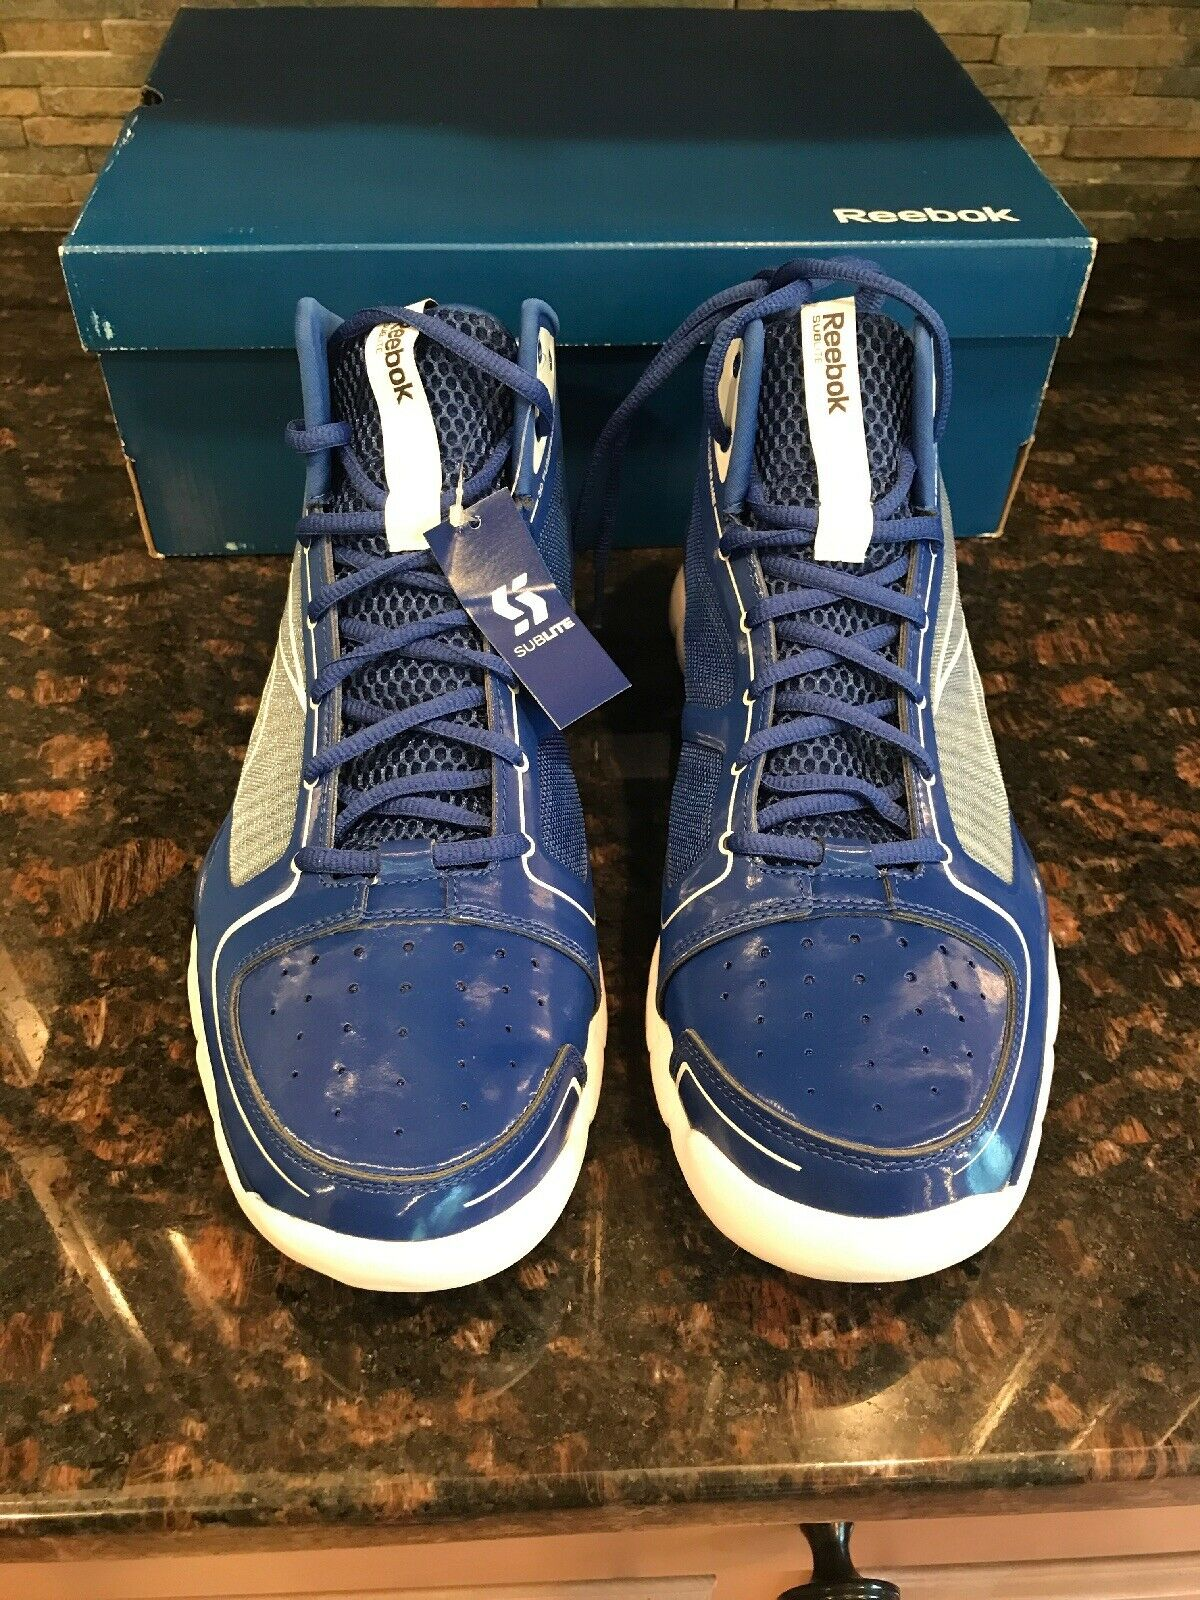 Reebok Sublite Pro Rise Promo Basketball Sneakers shoes Royal bluee White Mens 11